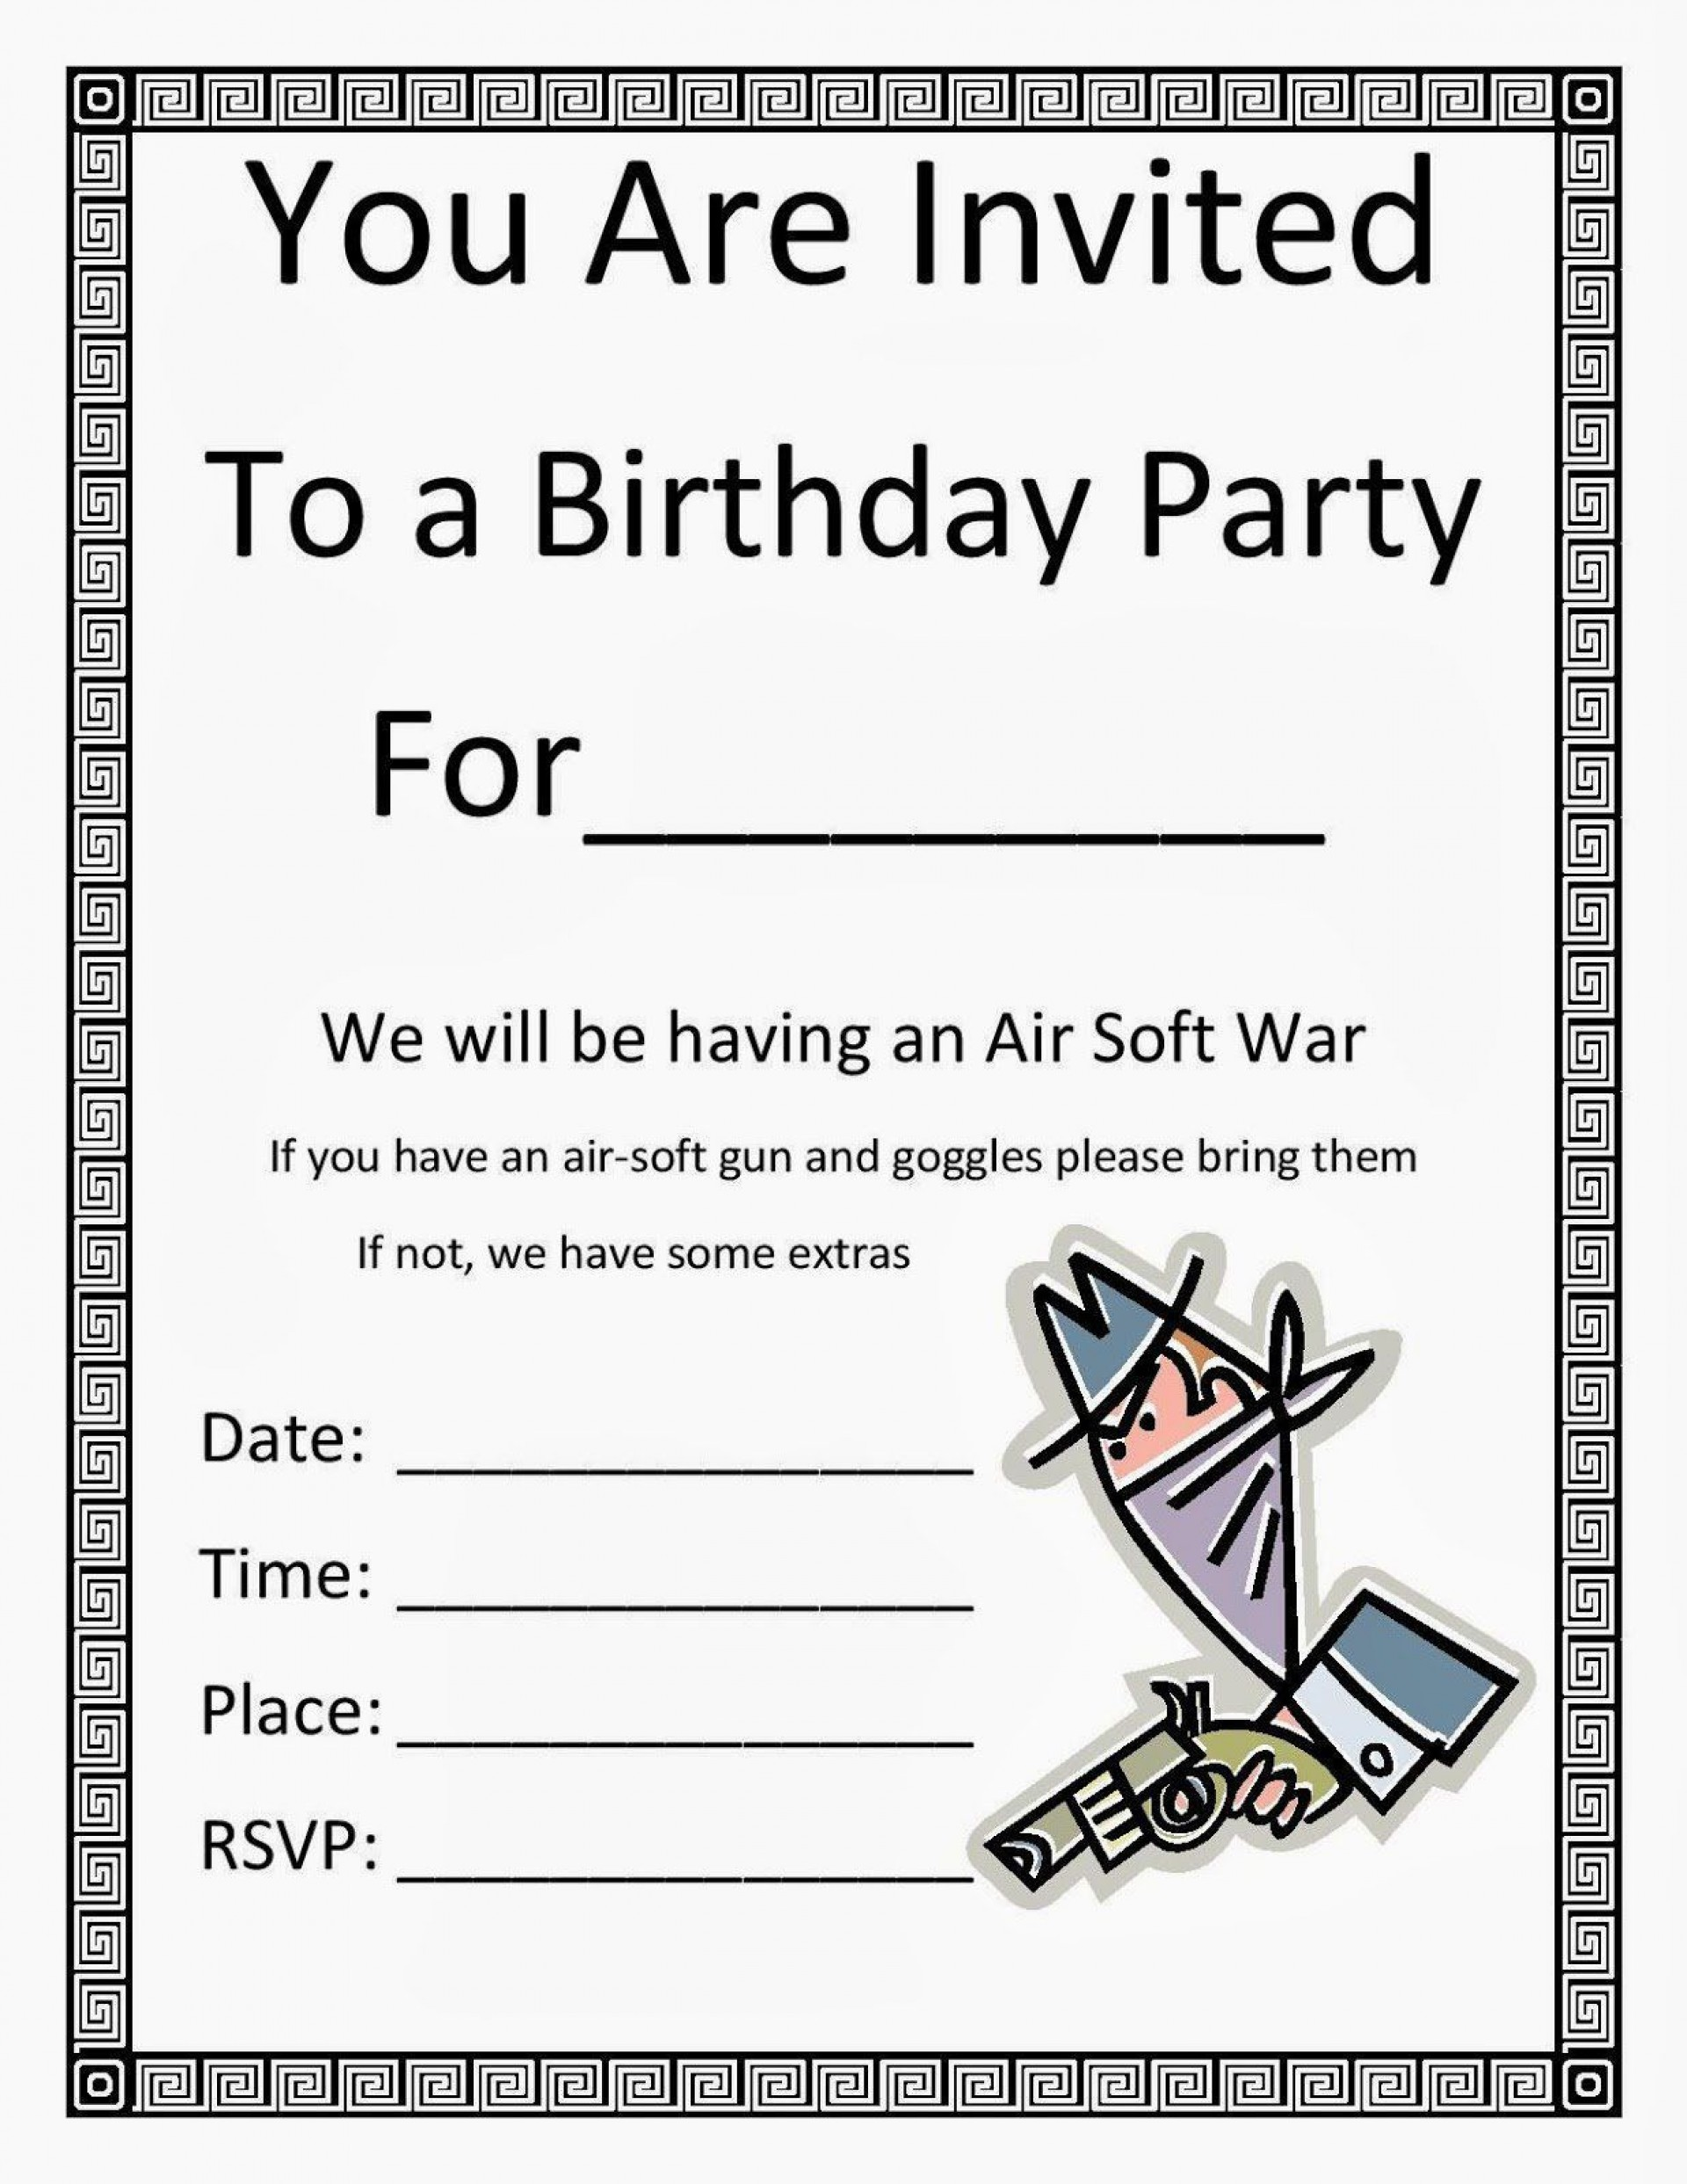 001 Fascinating Birthday Party Invitation Template Word High Resolution  40th Wording Sample Unicorn Free1920